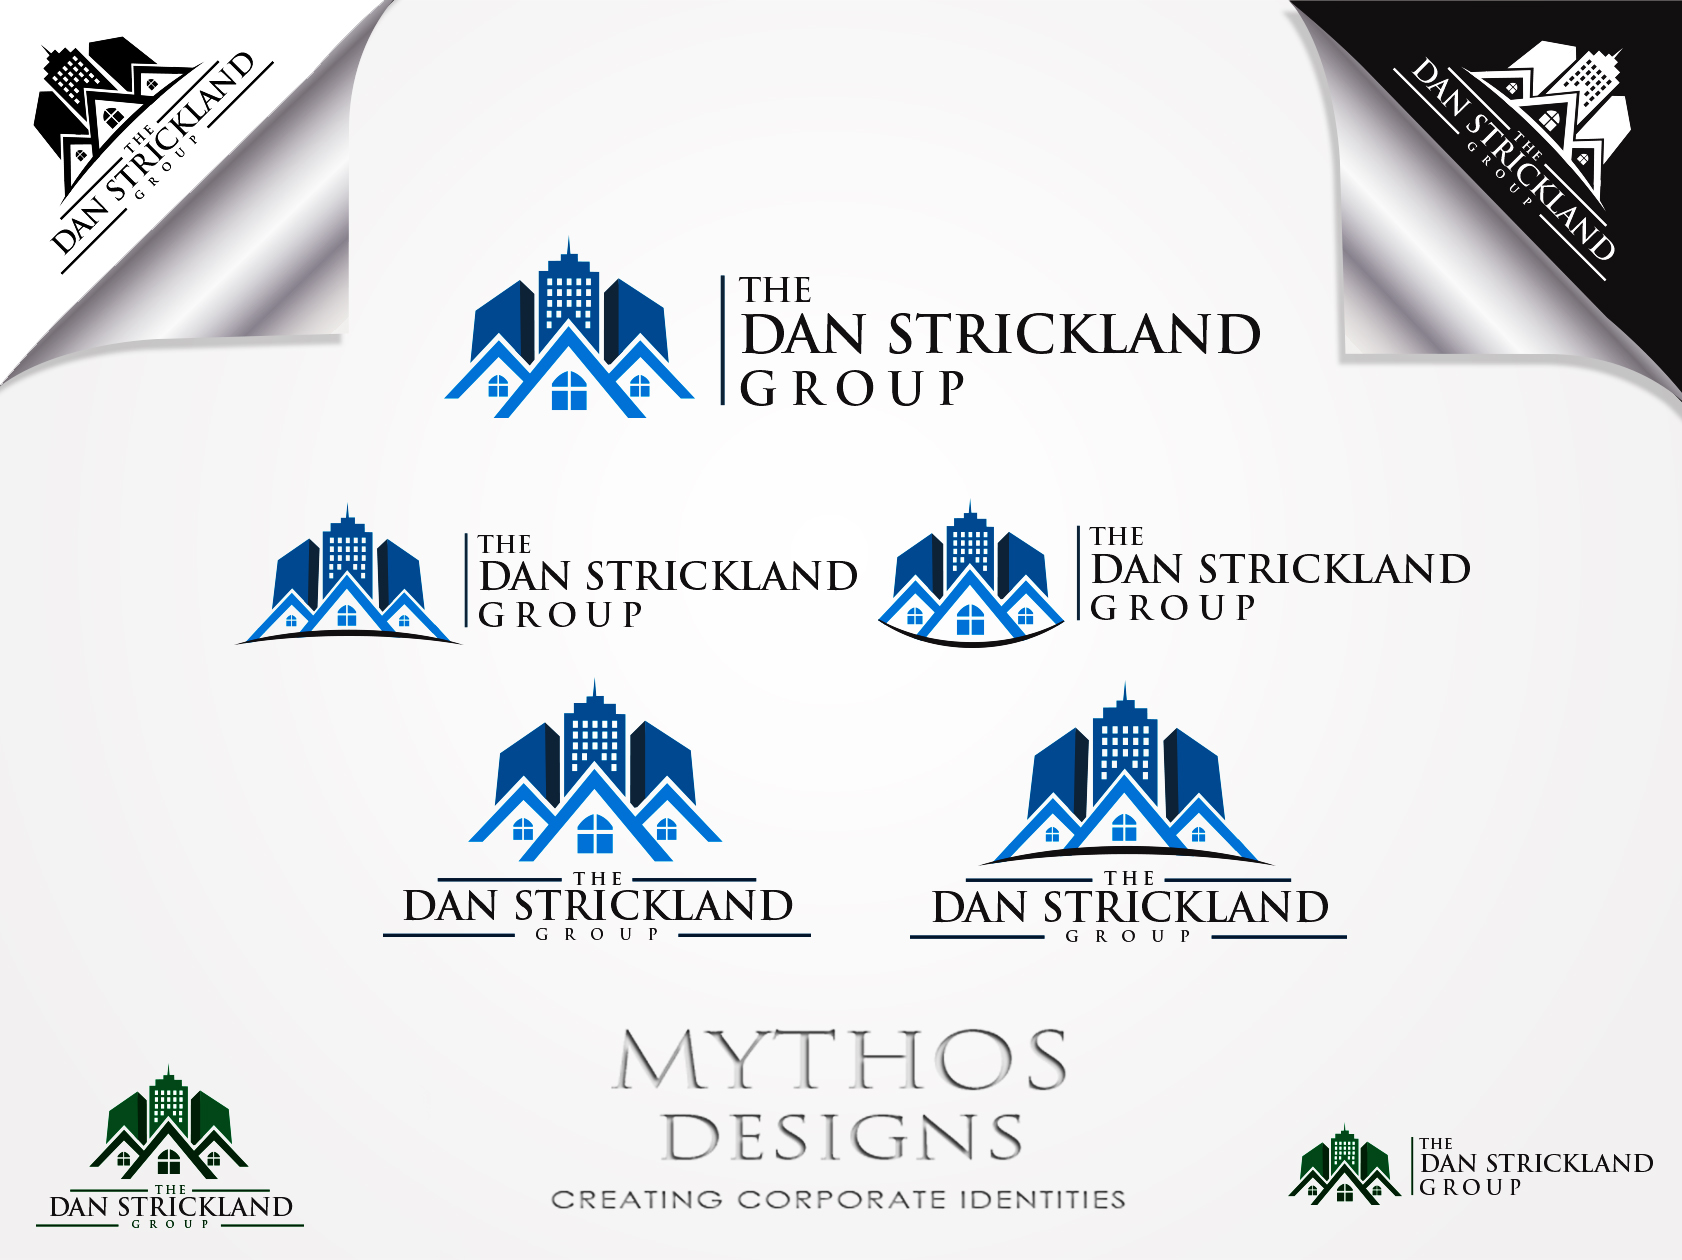 Logo Design by Mythos Designs - Entry No. 354 in the Logo Design Contest Creative Logo Design for The Dan Strickland Group.